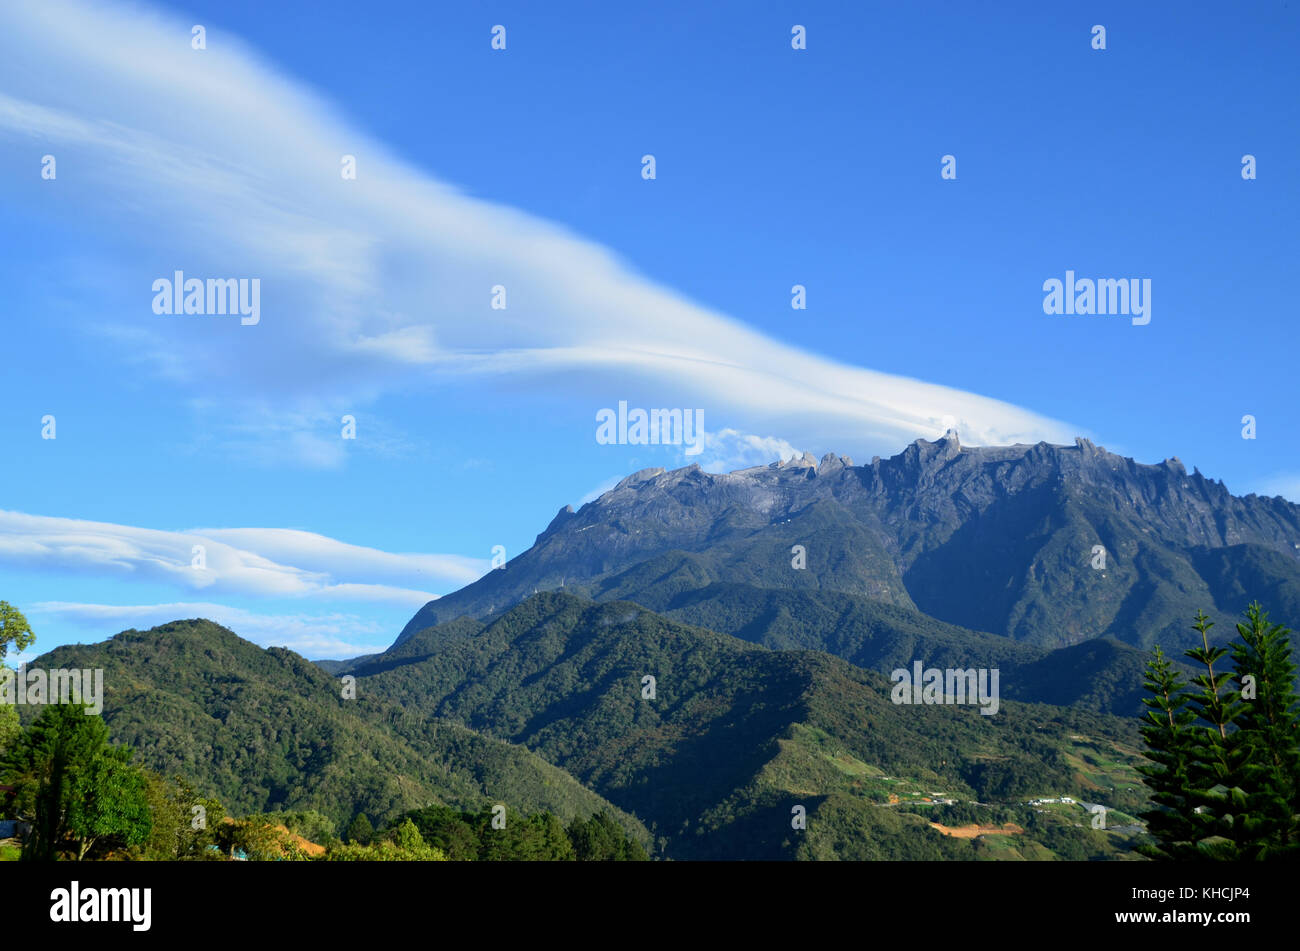 From batu caves to mount kinabalu, there are numerous natural wonders in malaysia that are sure to mesmerize you. View Of Mount Kinabalu Peak With Beautiful Cloud Formation Mount Kinabalu Is A Mountain In Sabah Malaysia It Is Protected As A World Heritage Park Stock Photo Alamy